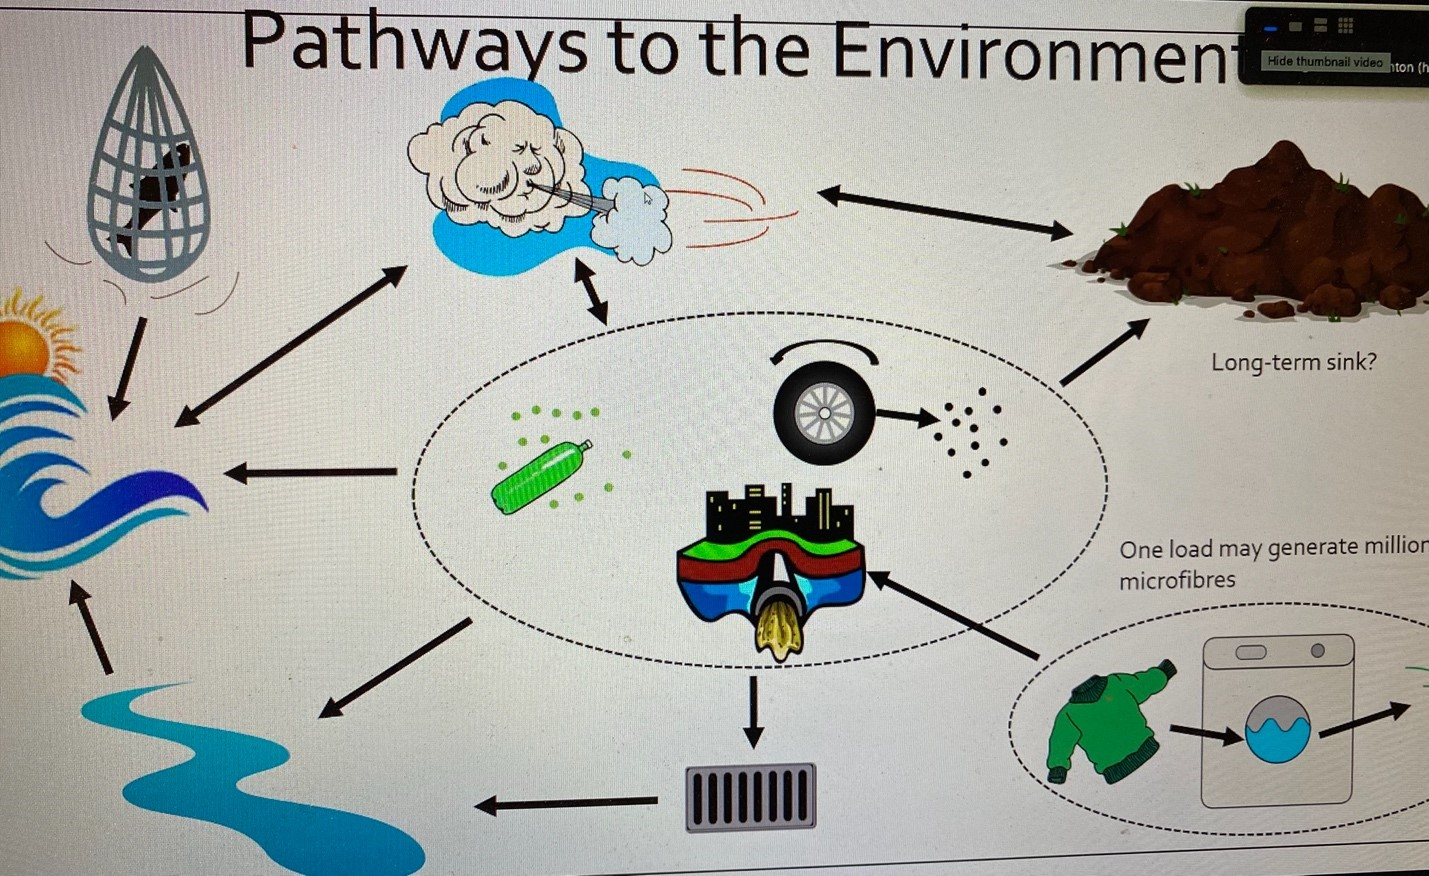 Pathways to the Environment